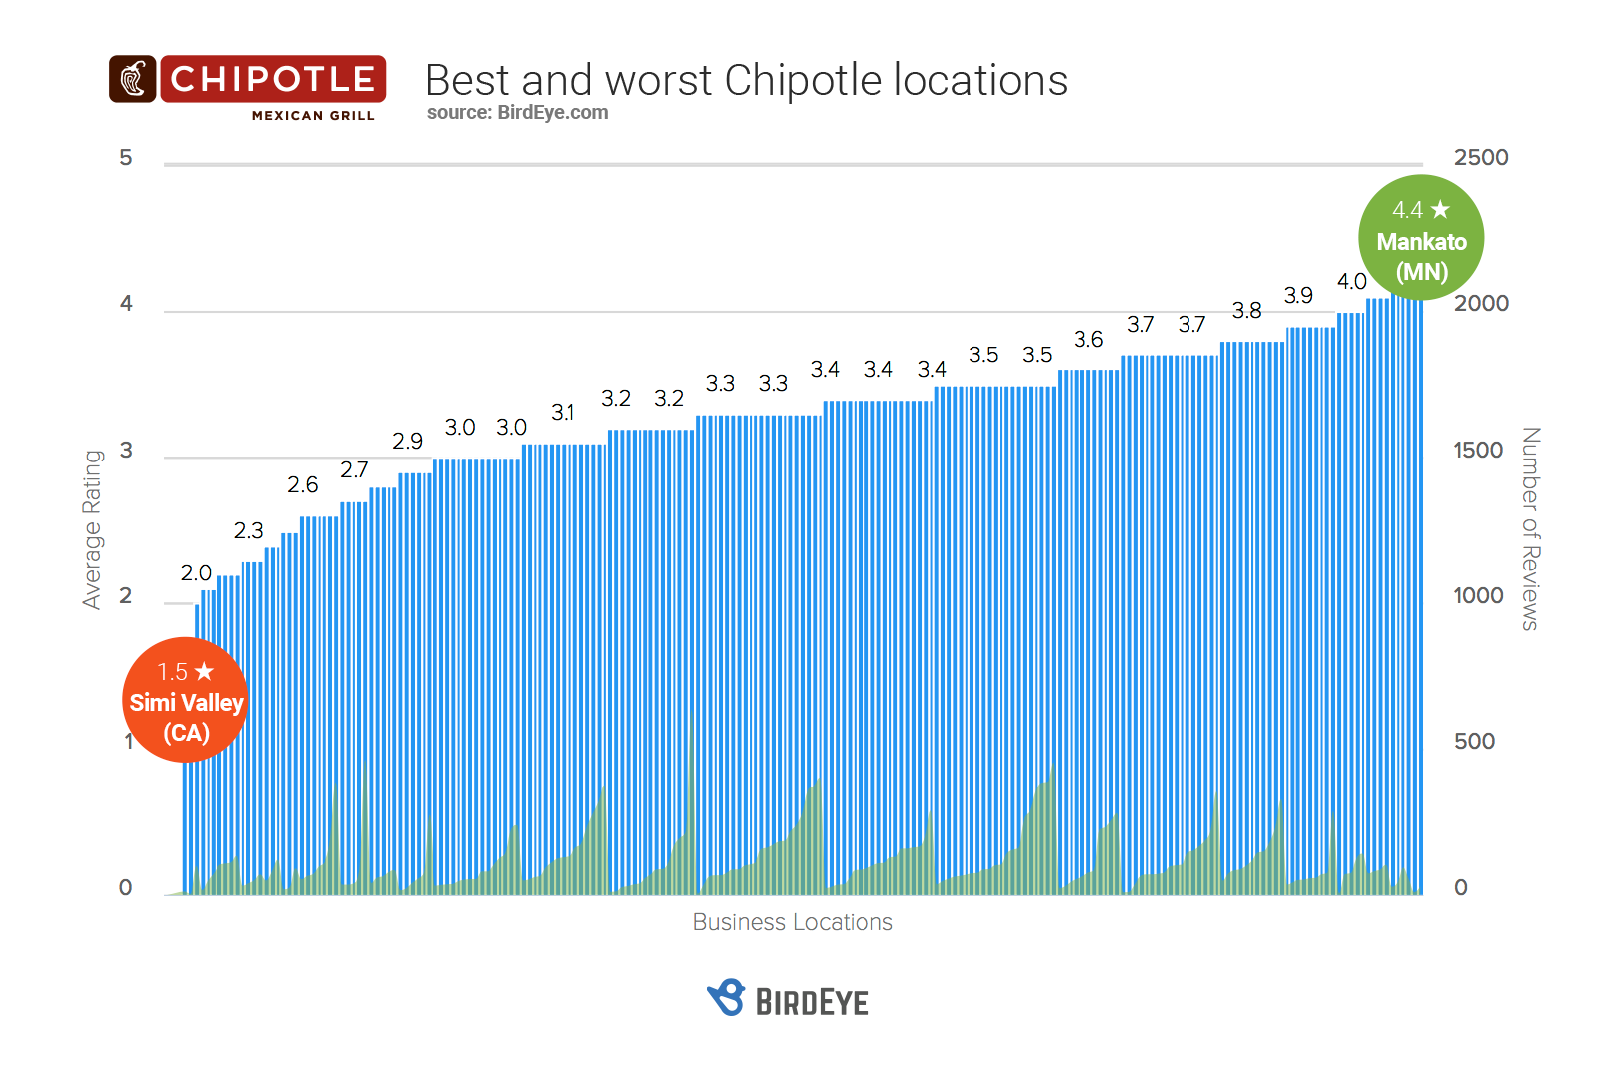 Best and Worst Chipotle Locations